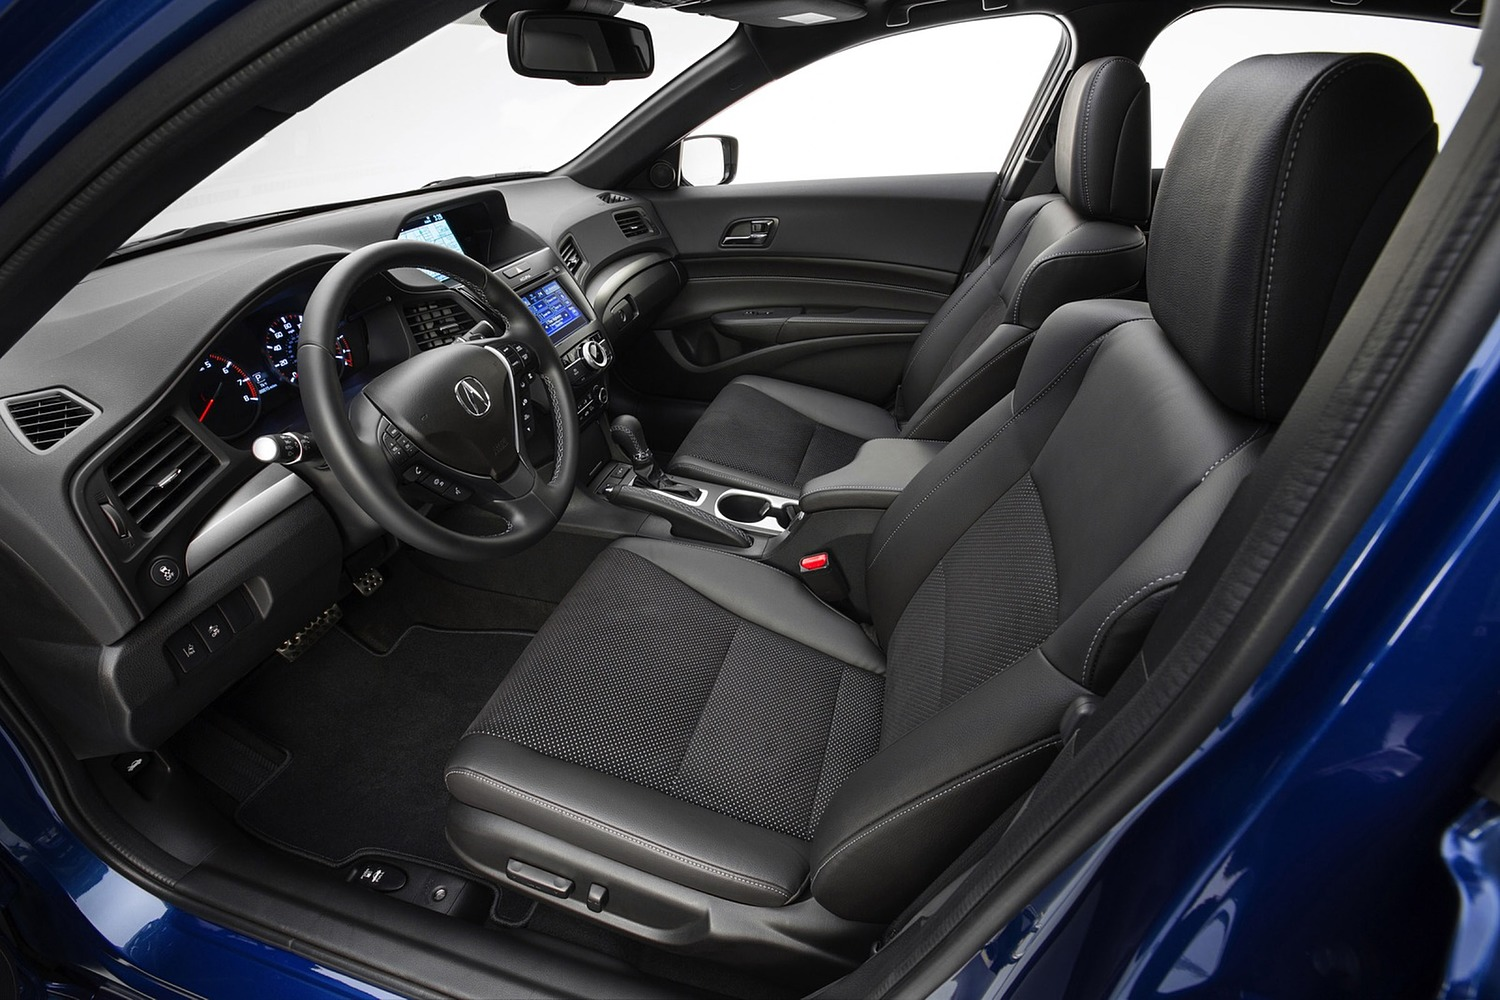 Acura ILX Technology Plus and A-SPEC Packages Sedan Interior (2016 model year shown)